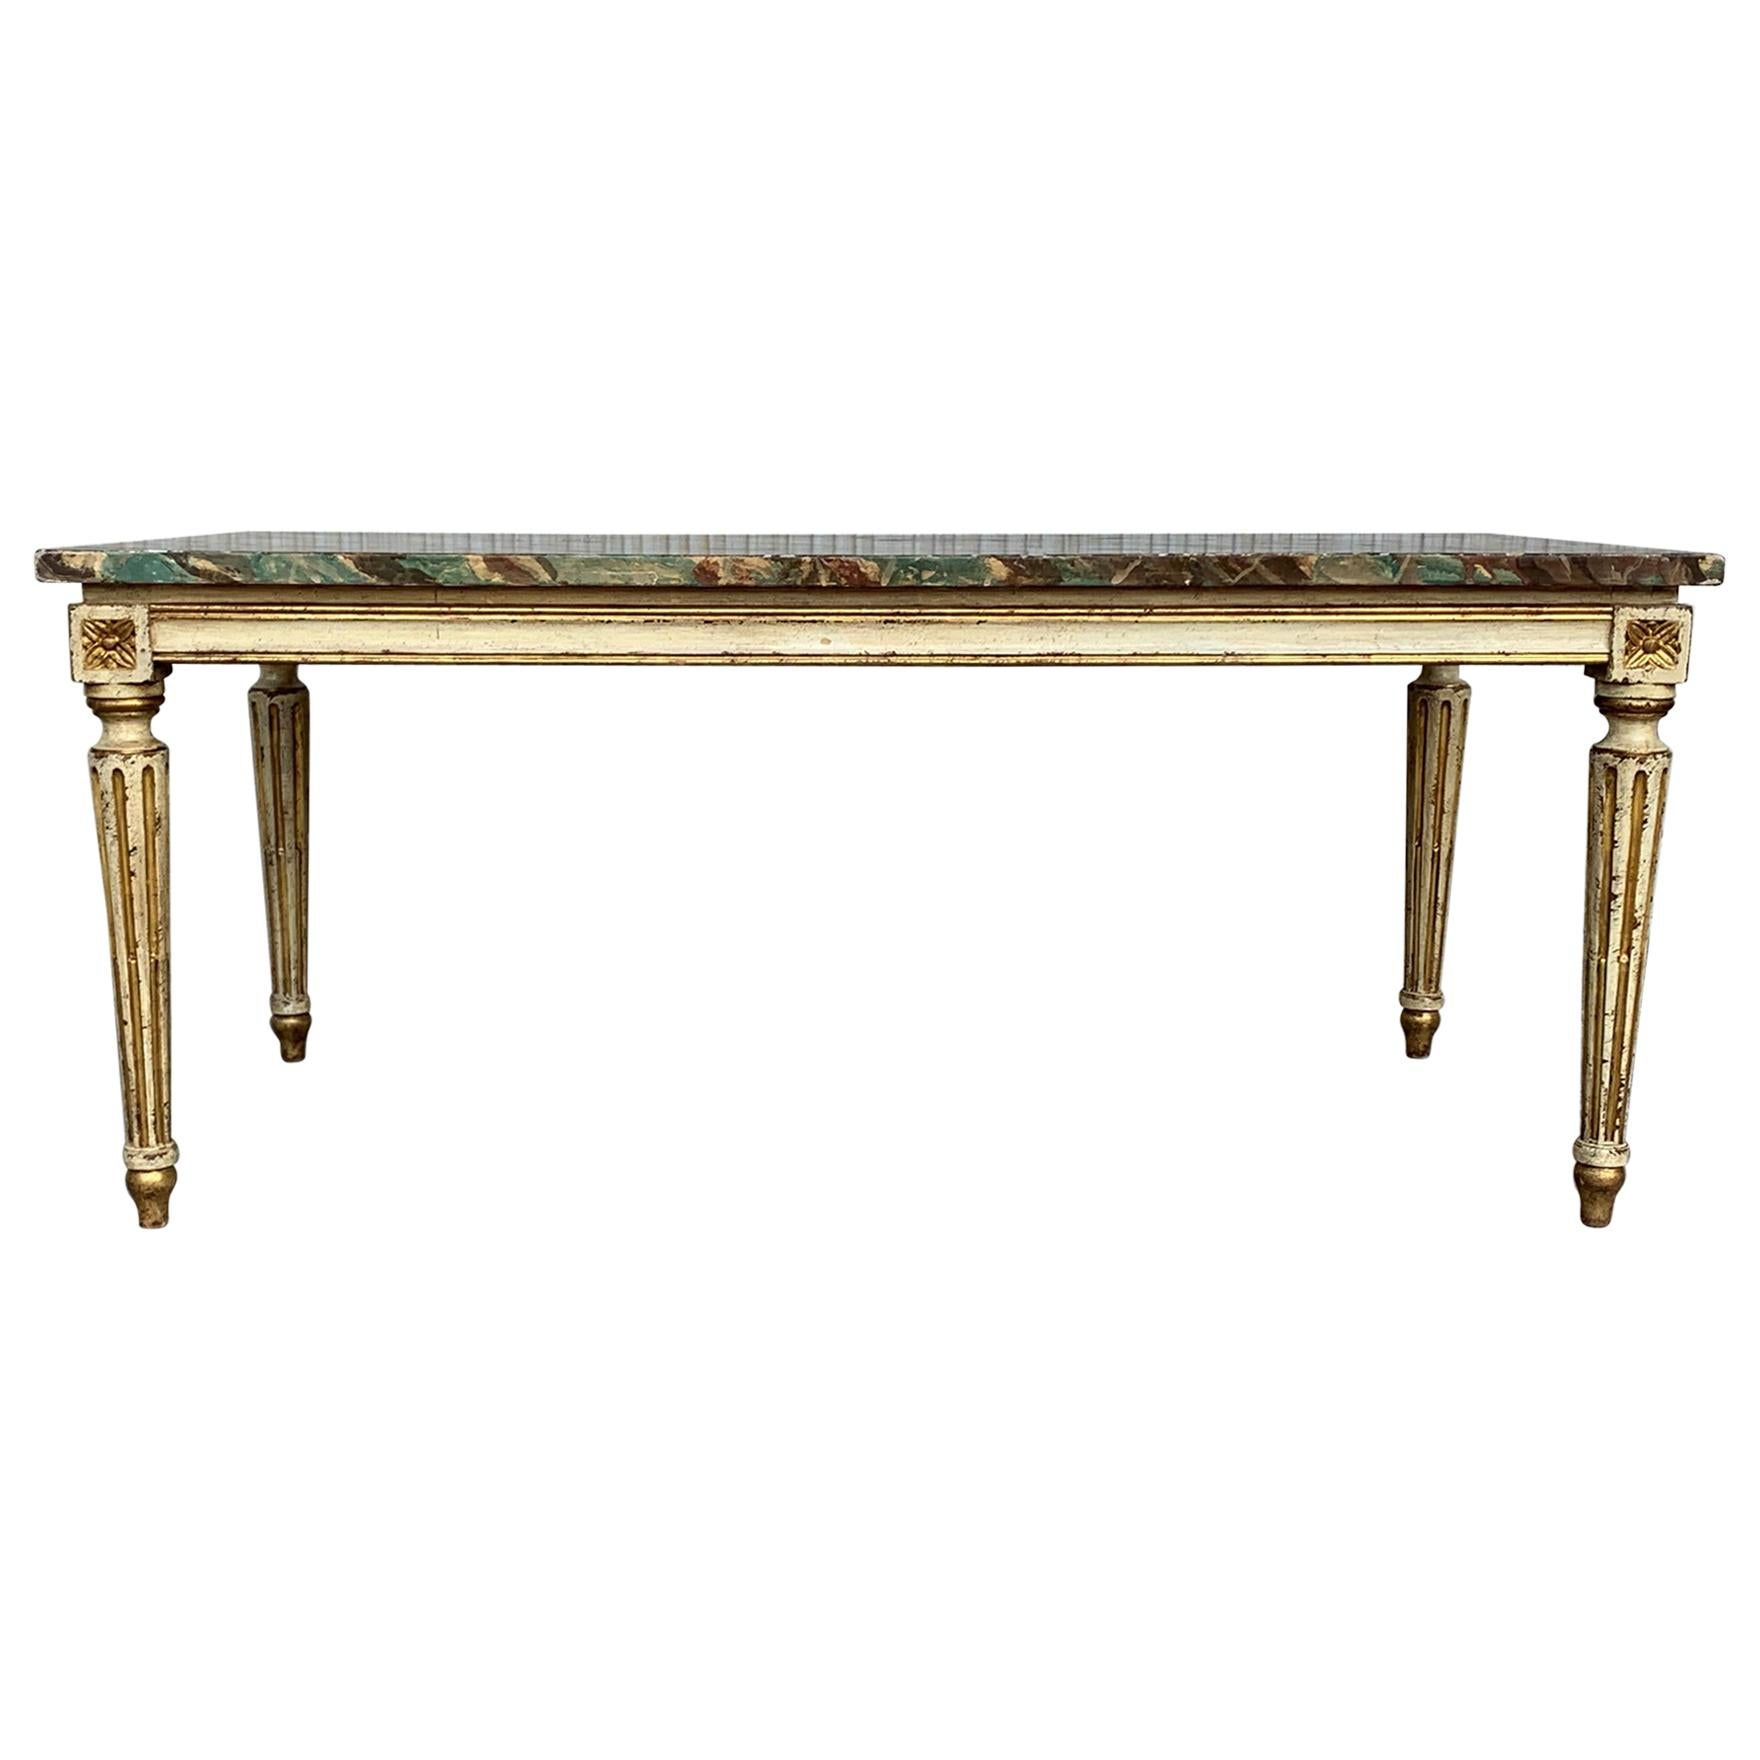 19th Century Venetian Parcel-Gilt Coffee Table with Faux Marble Top